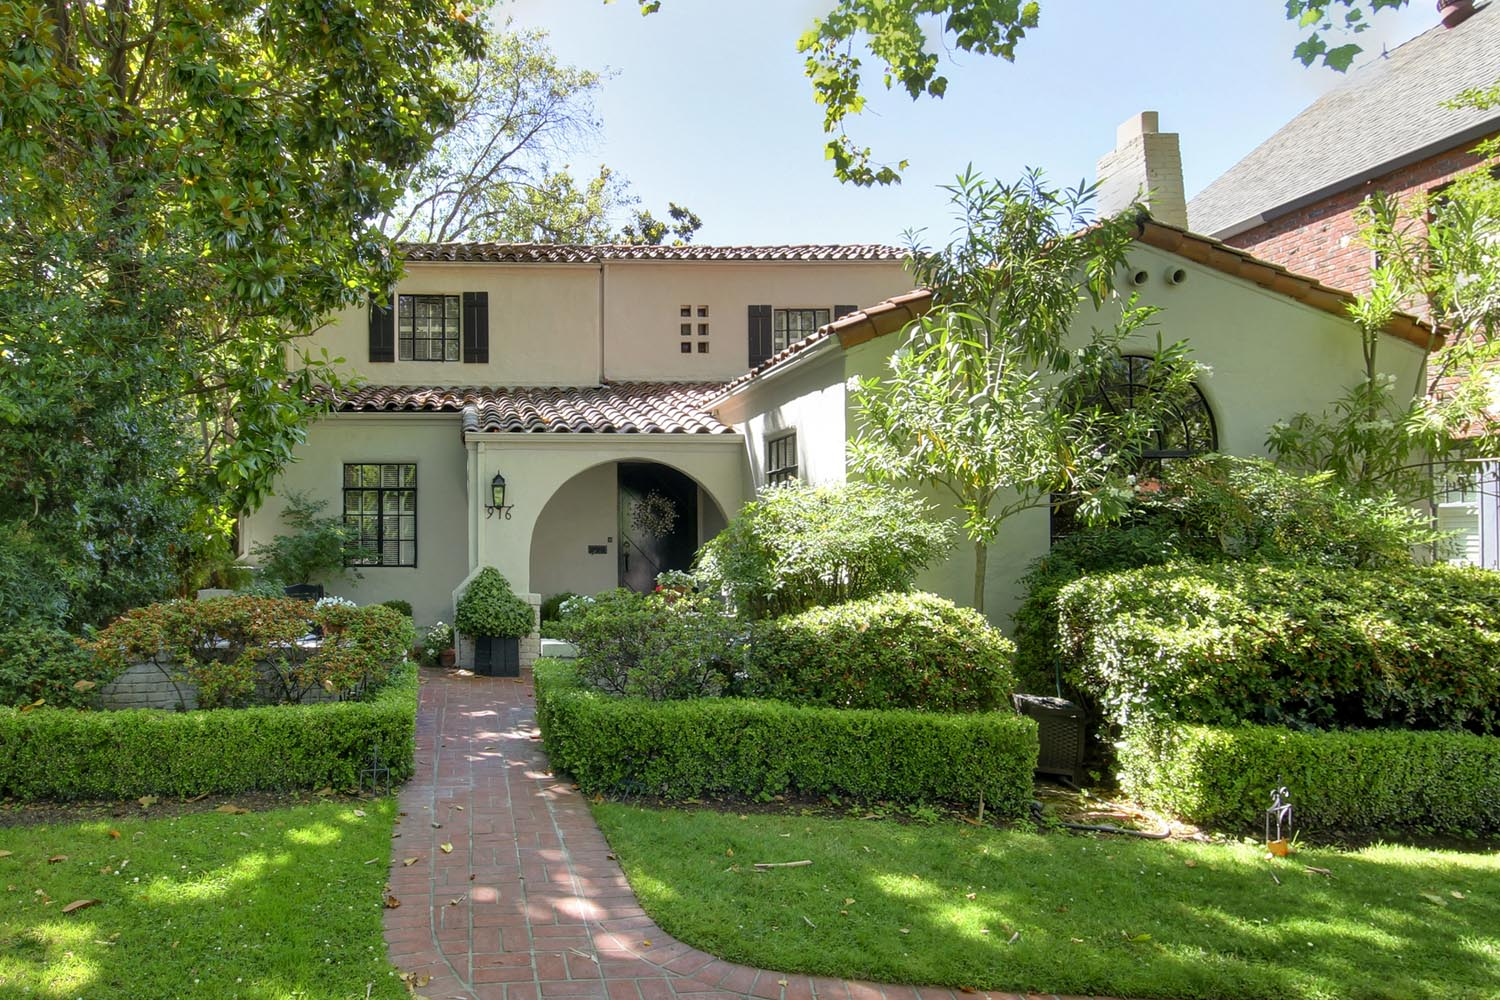 Spanish Style in East Sacramento